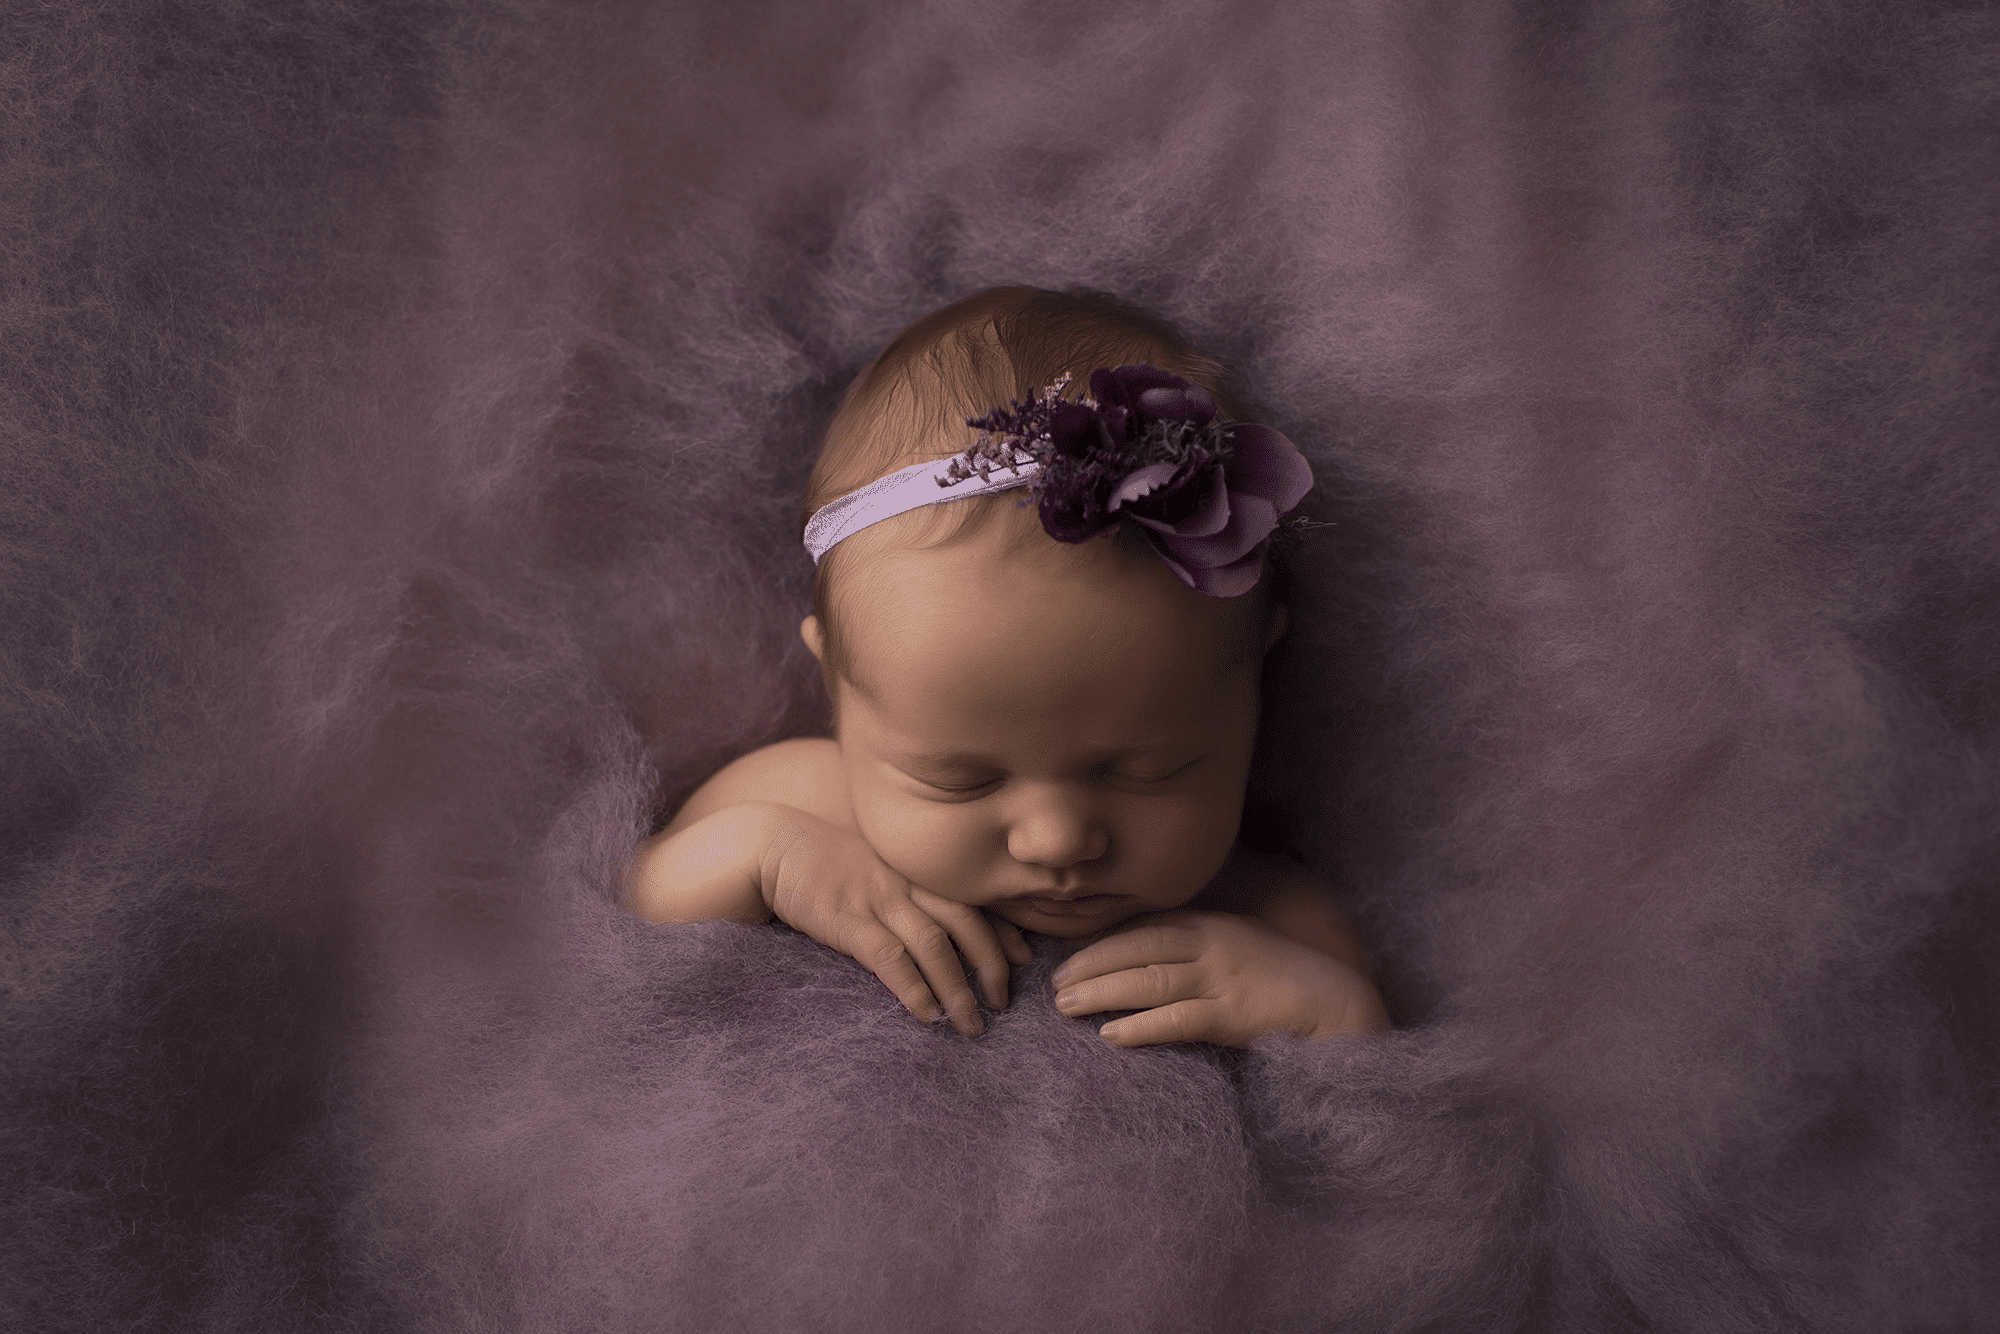 newborn-baby-girl-sleeping